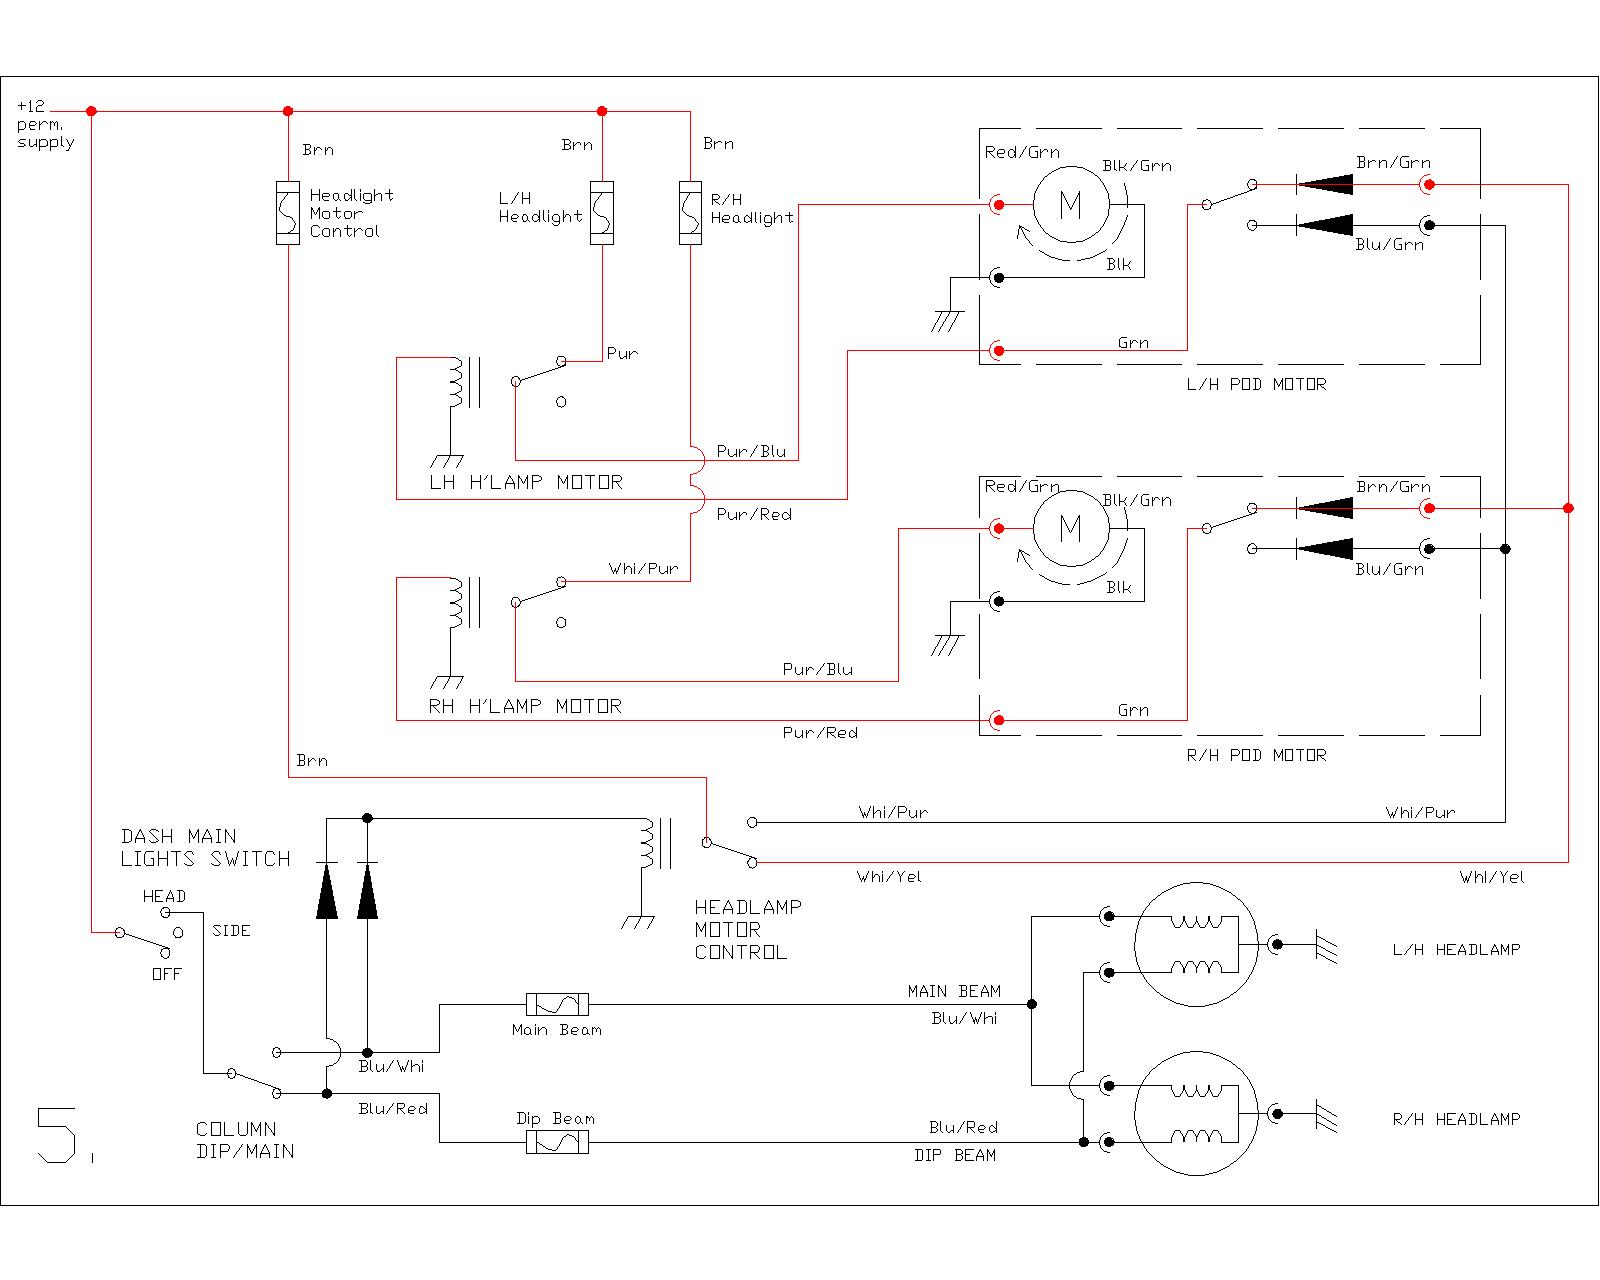 tr7 headlight wiring diagram tr7 wiring diagrams tr7 headlight wiring diagram tr7 auto wiring diagram schematic